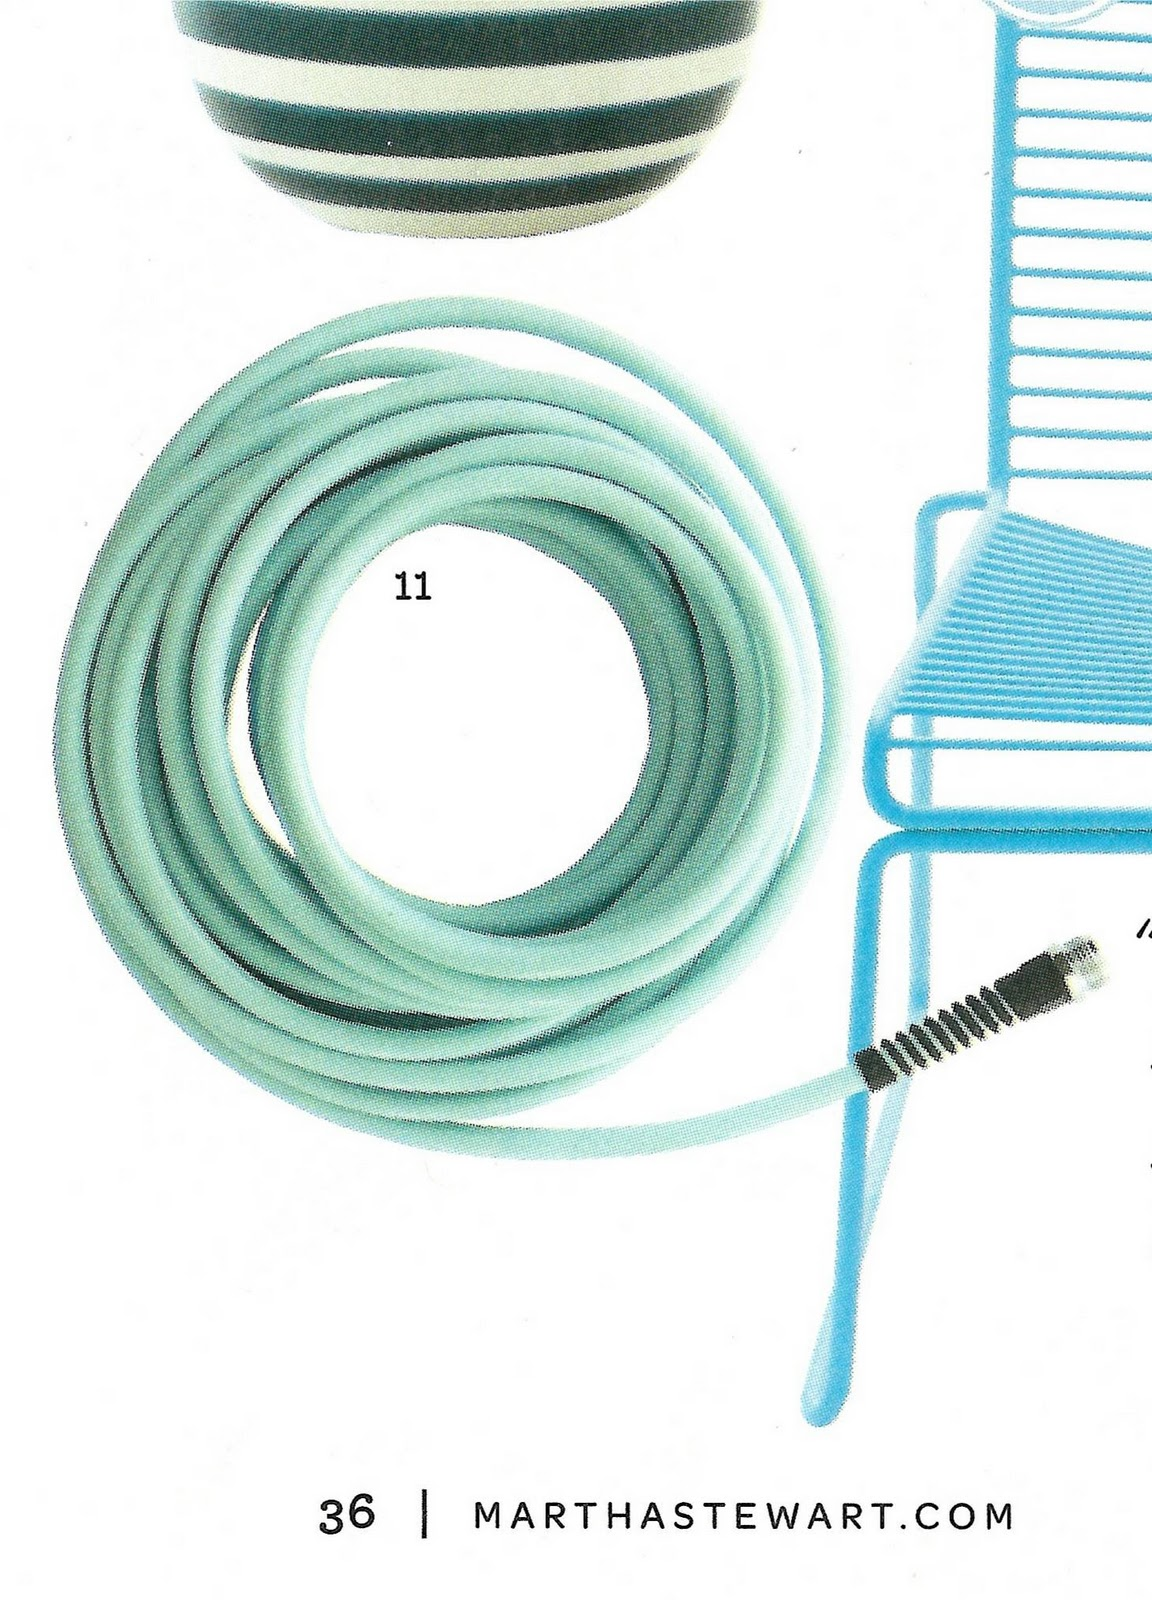 Great My Heart Pitter Pattered Over A Hose In The April Issue Of Martha Stewart  Living. Yes, You Read Right. A Hose. As In Garden Hose. The Color Is Called  Sunken ...